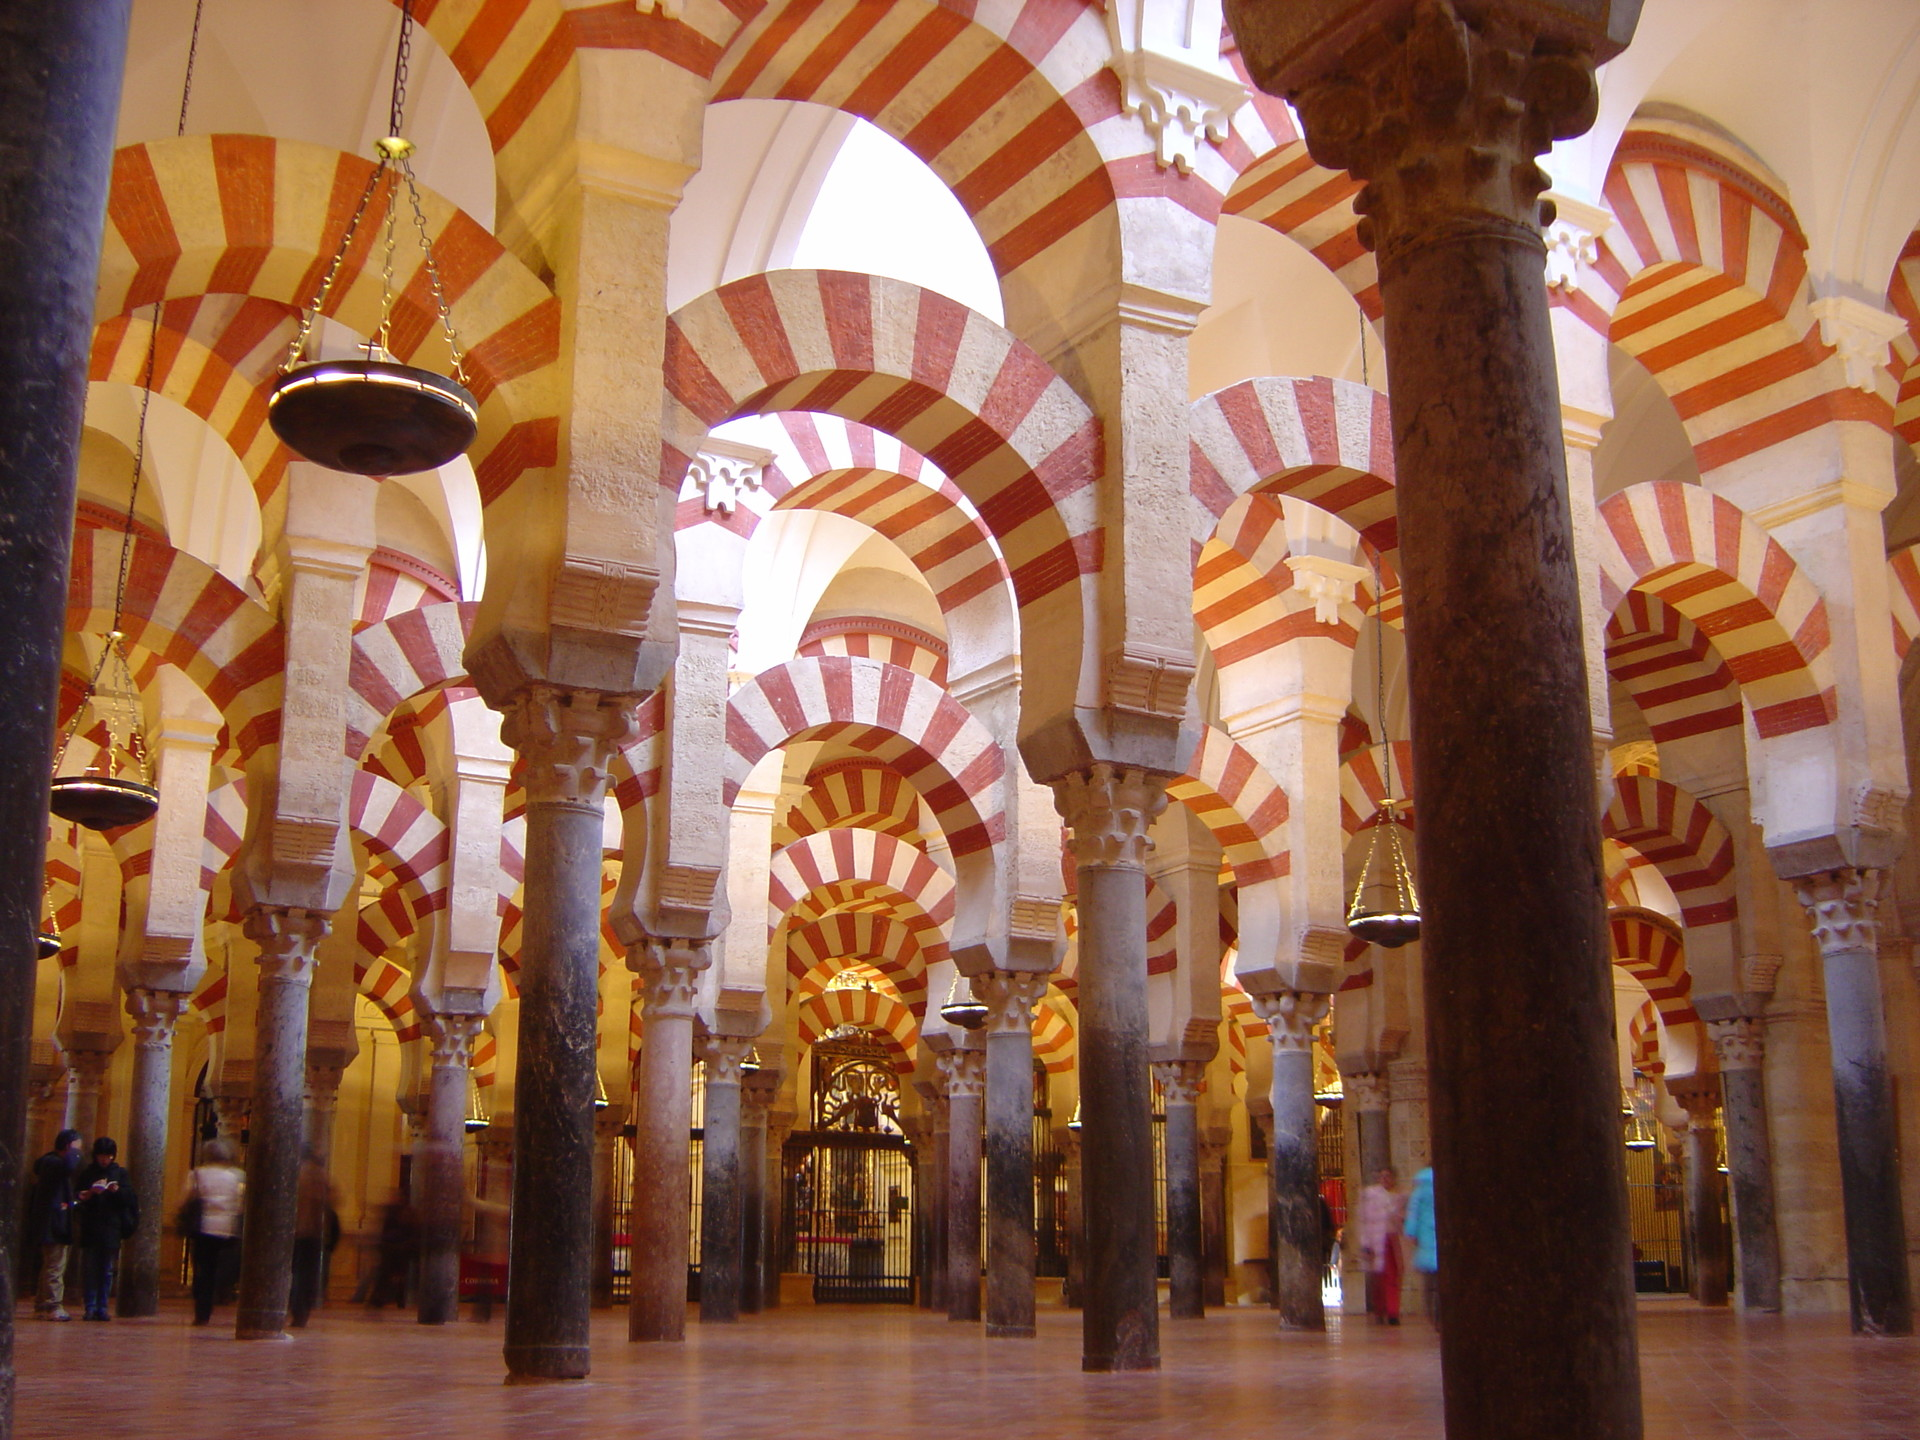 Experience in Córdoba, Spain by Miguel